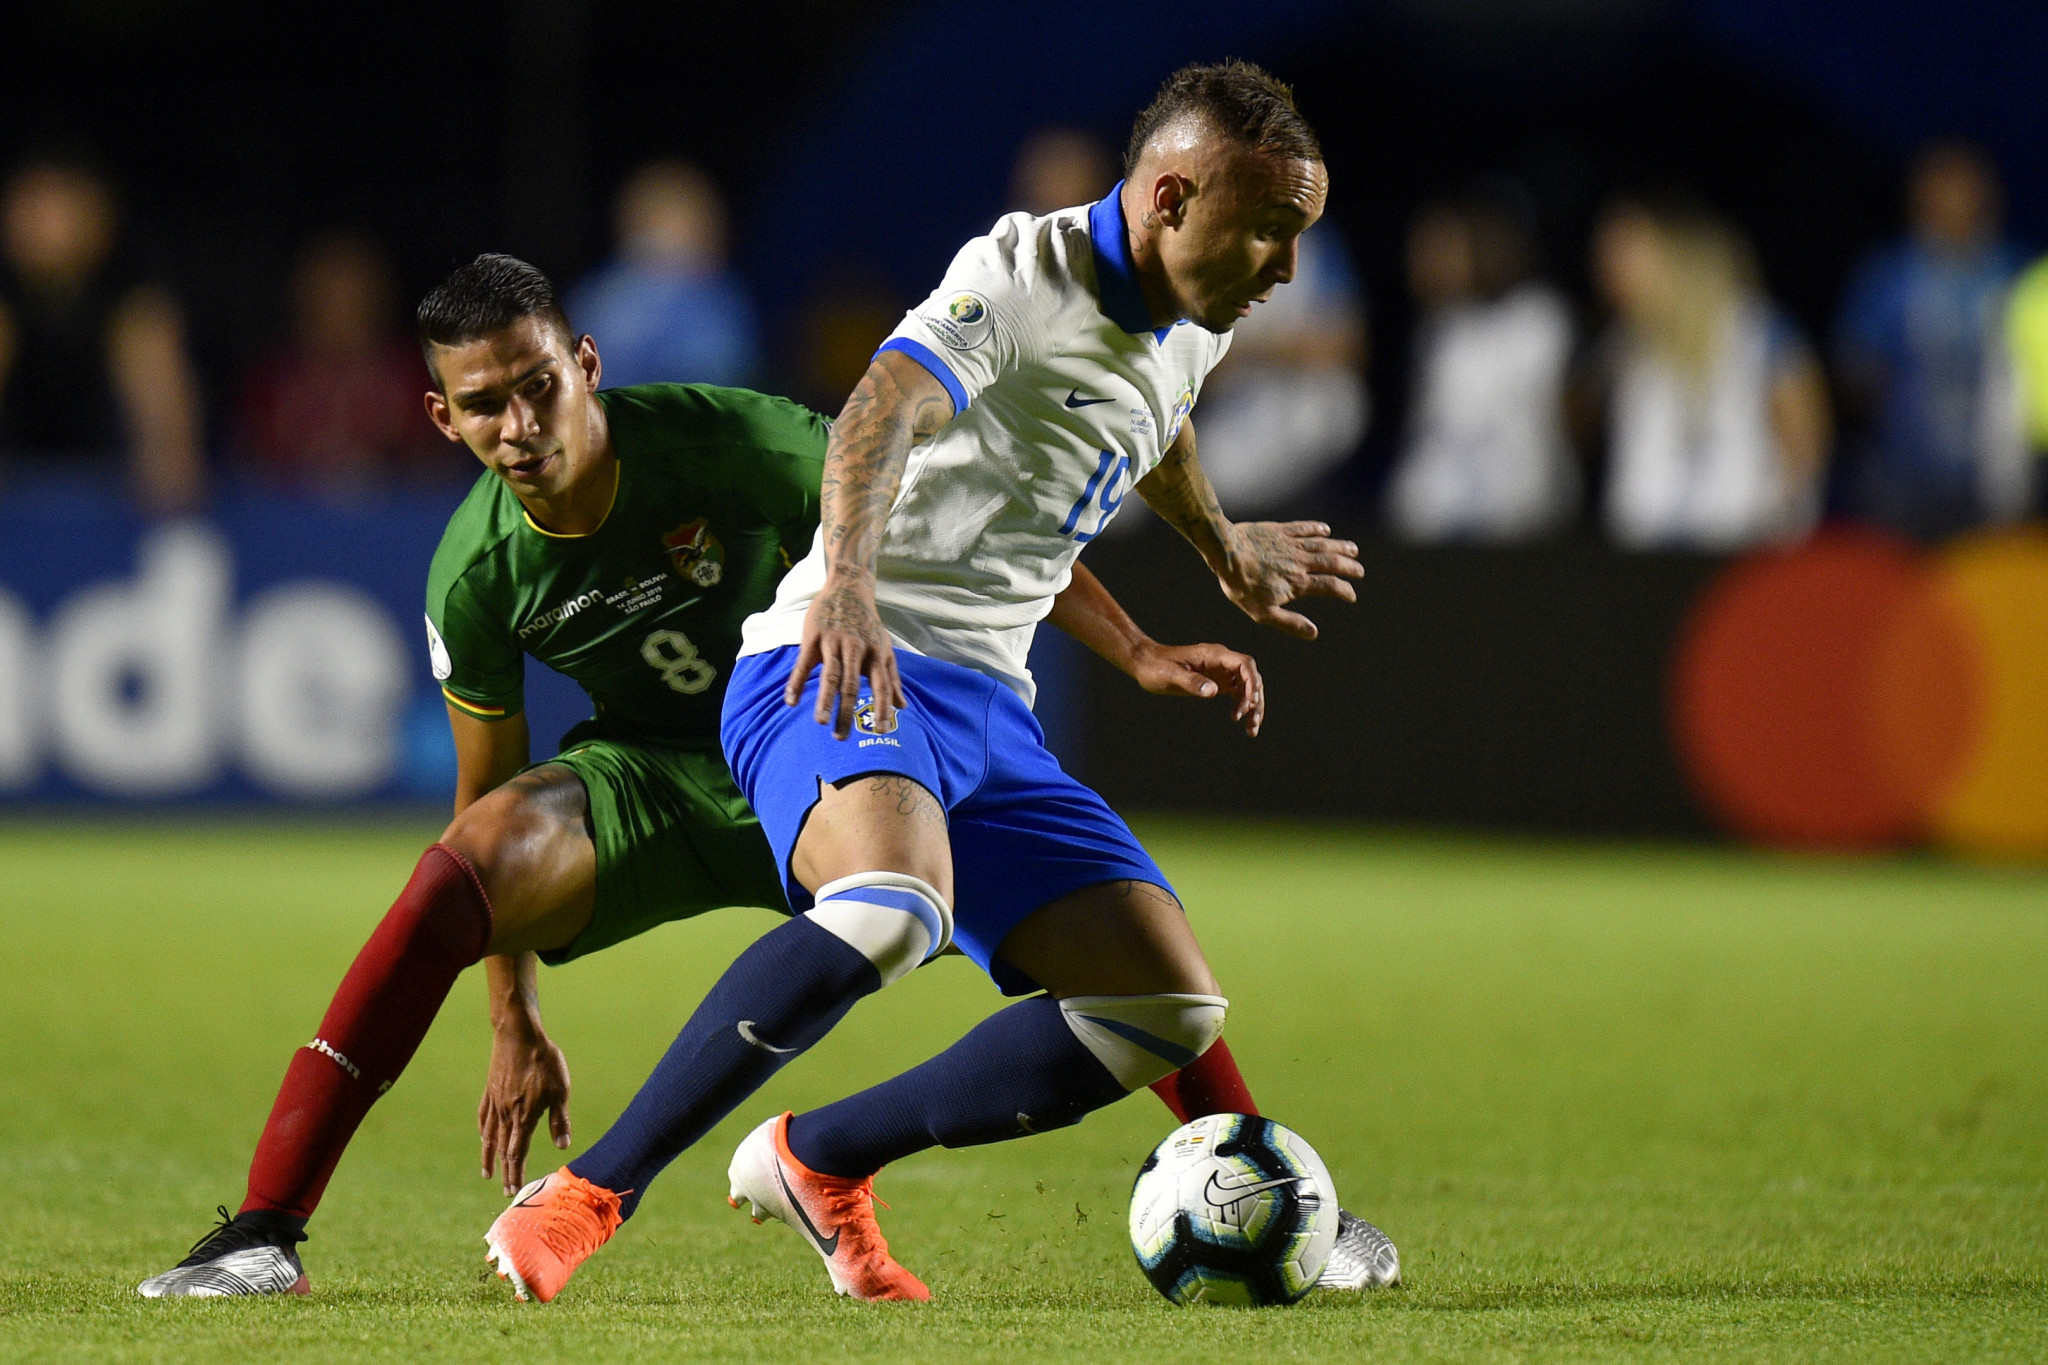 Everton Soares scored the third goal in Brazil's 3-0 victory against Bolivia in the Copa America ©Getty Images